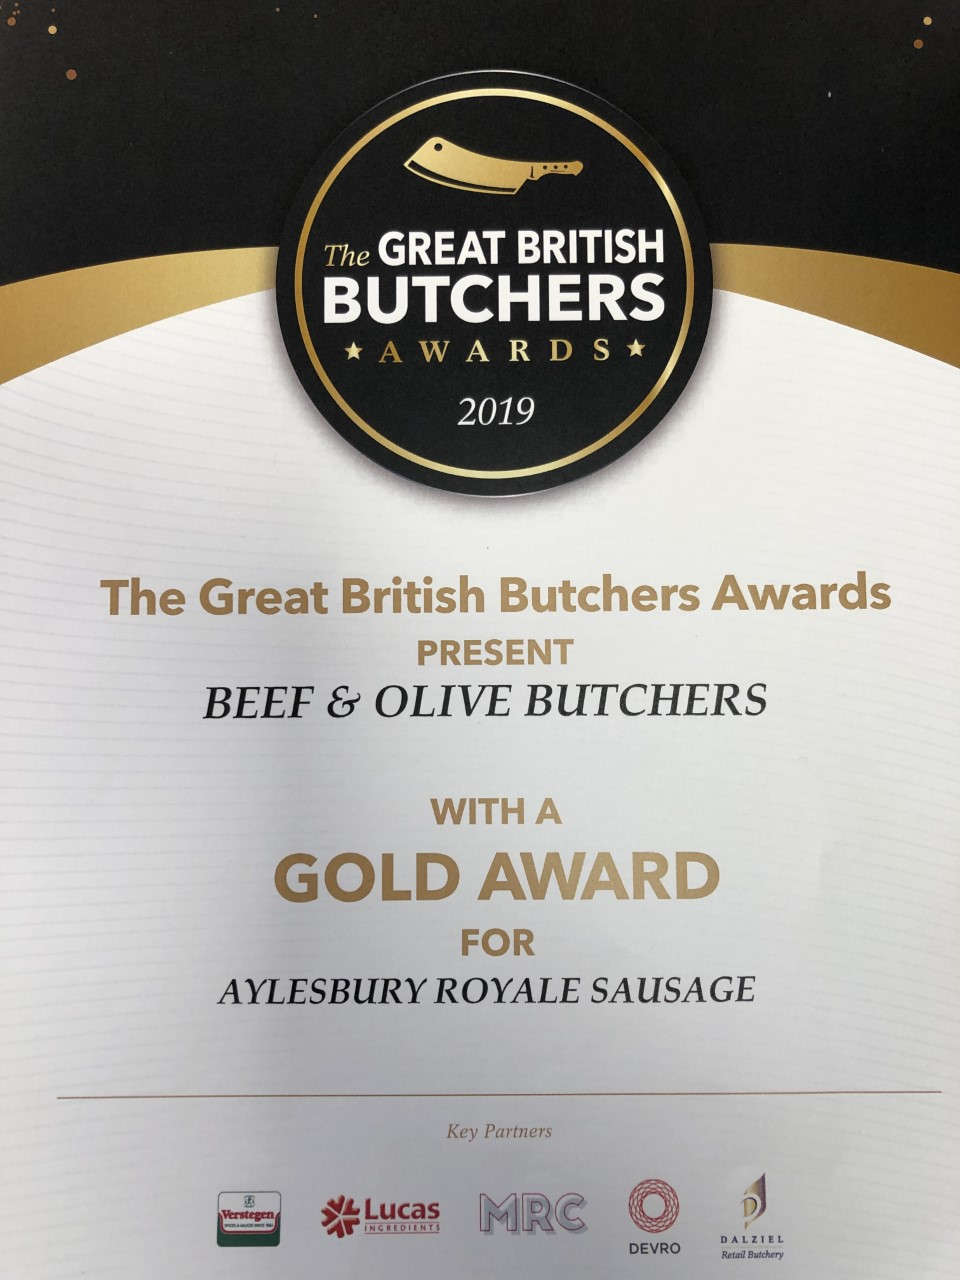 Great British Butchers Gold Award for Aylesbury Royale Sausage